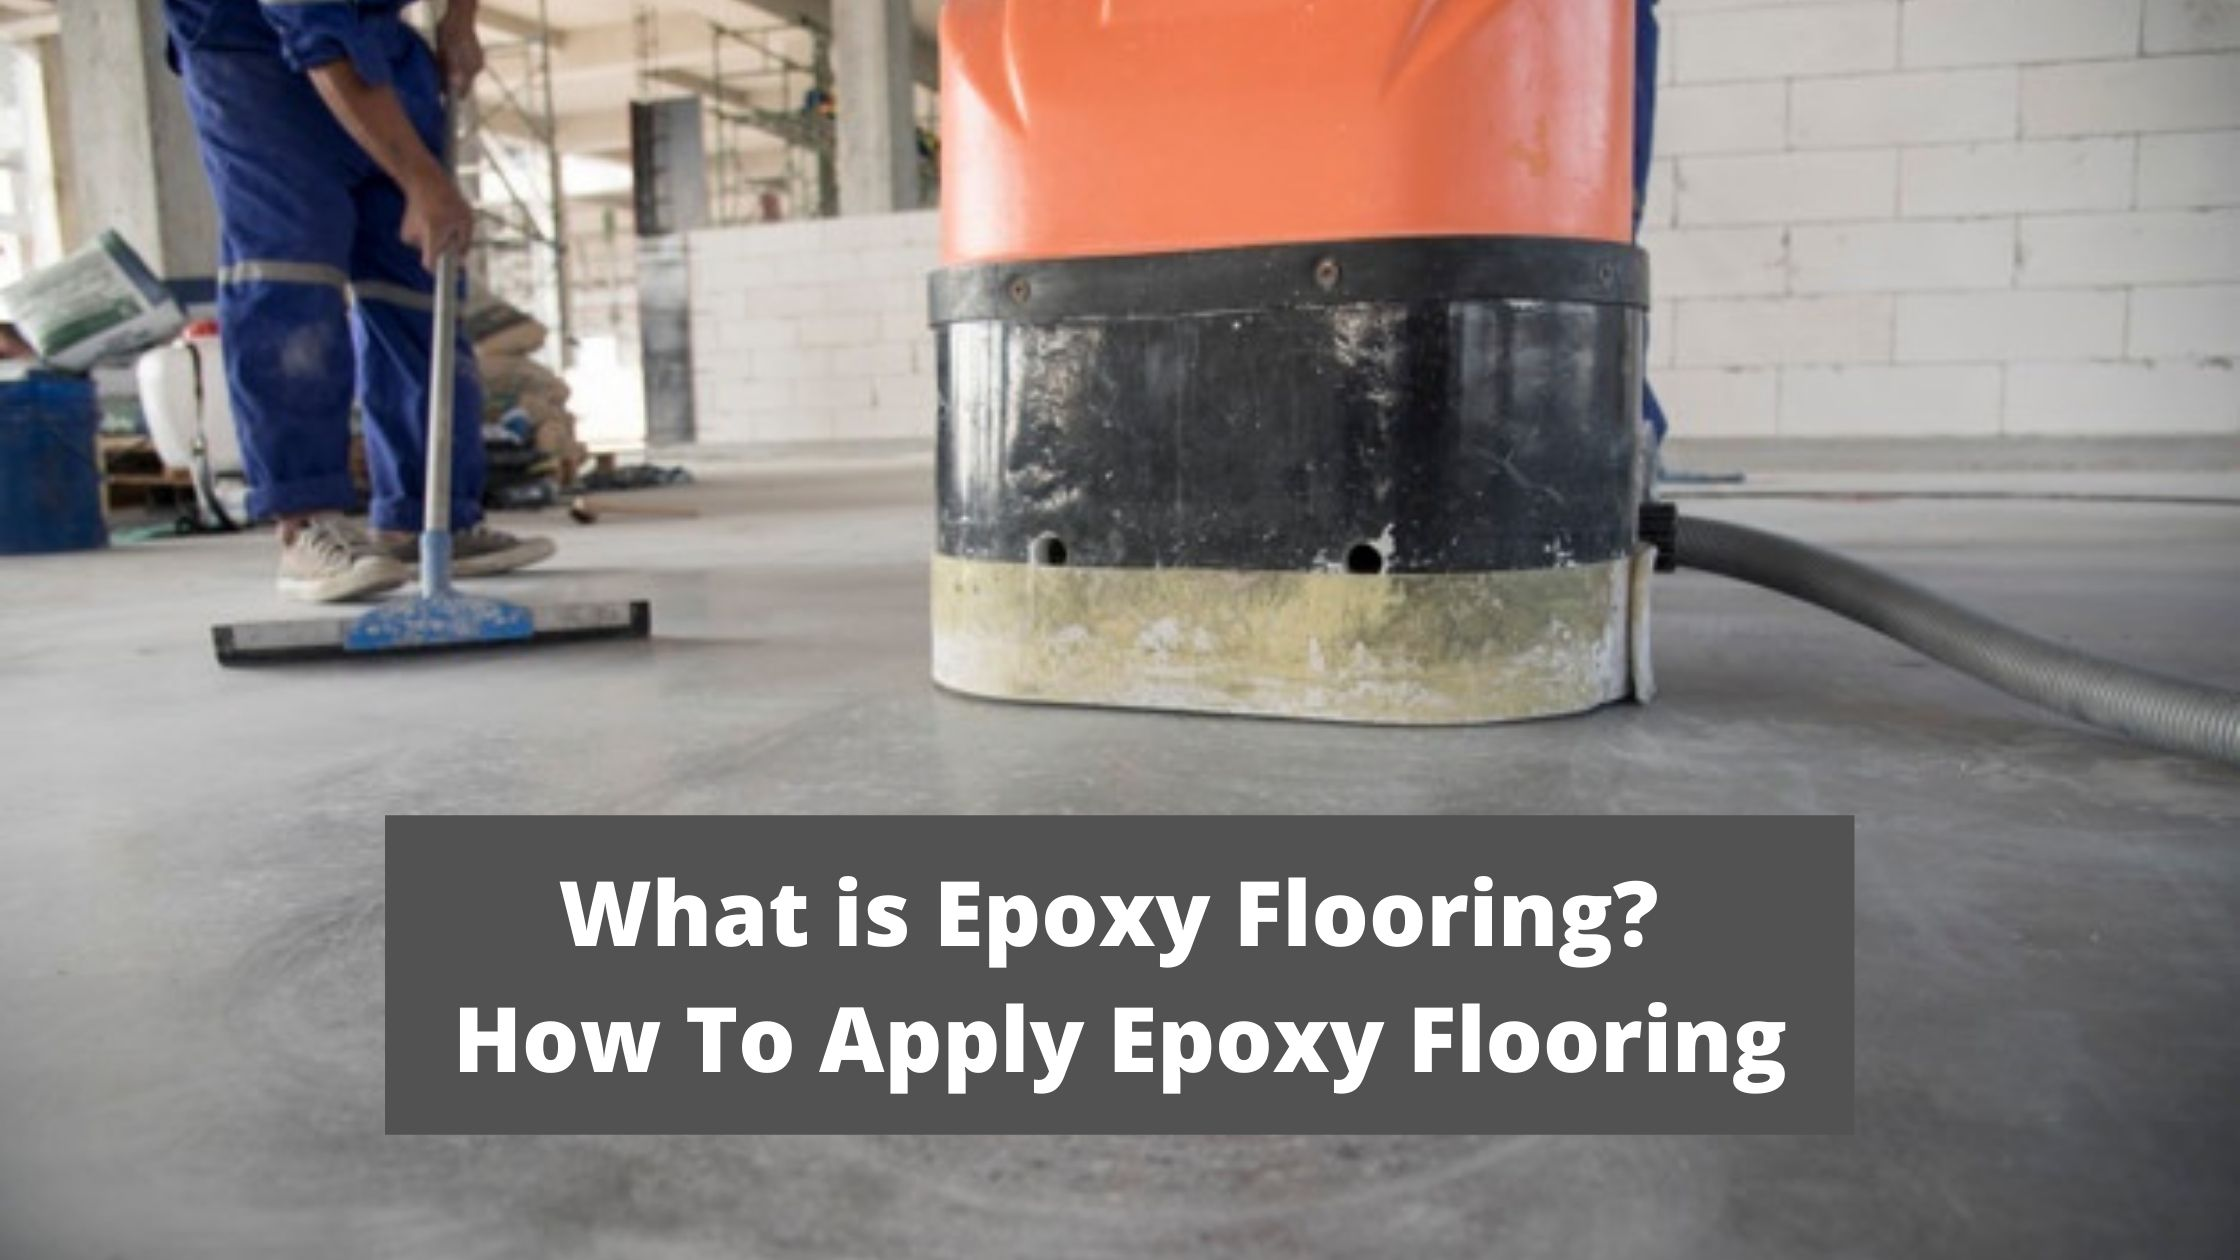 What is Epoxy Flooring? Applications and Advantages of Epoxy Flooring